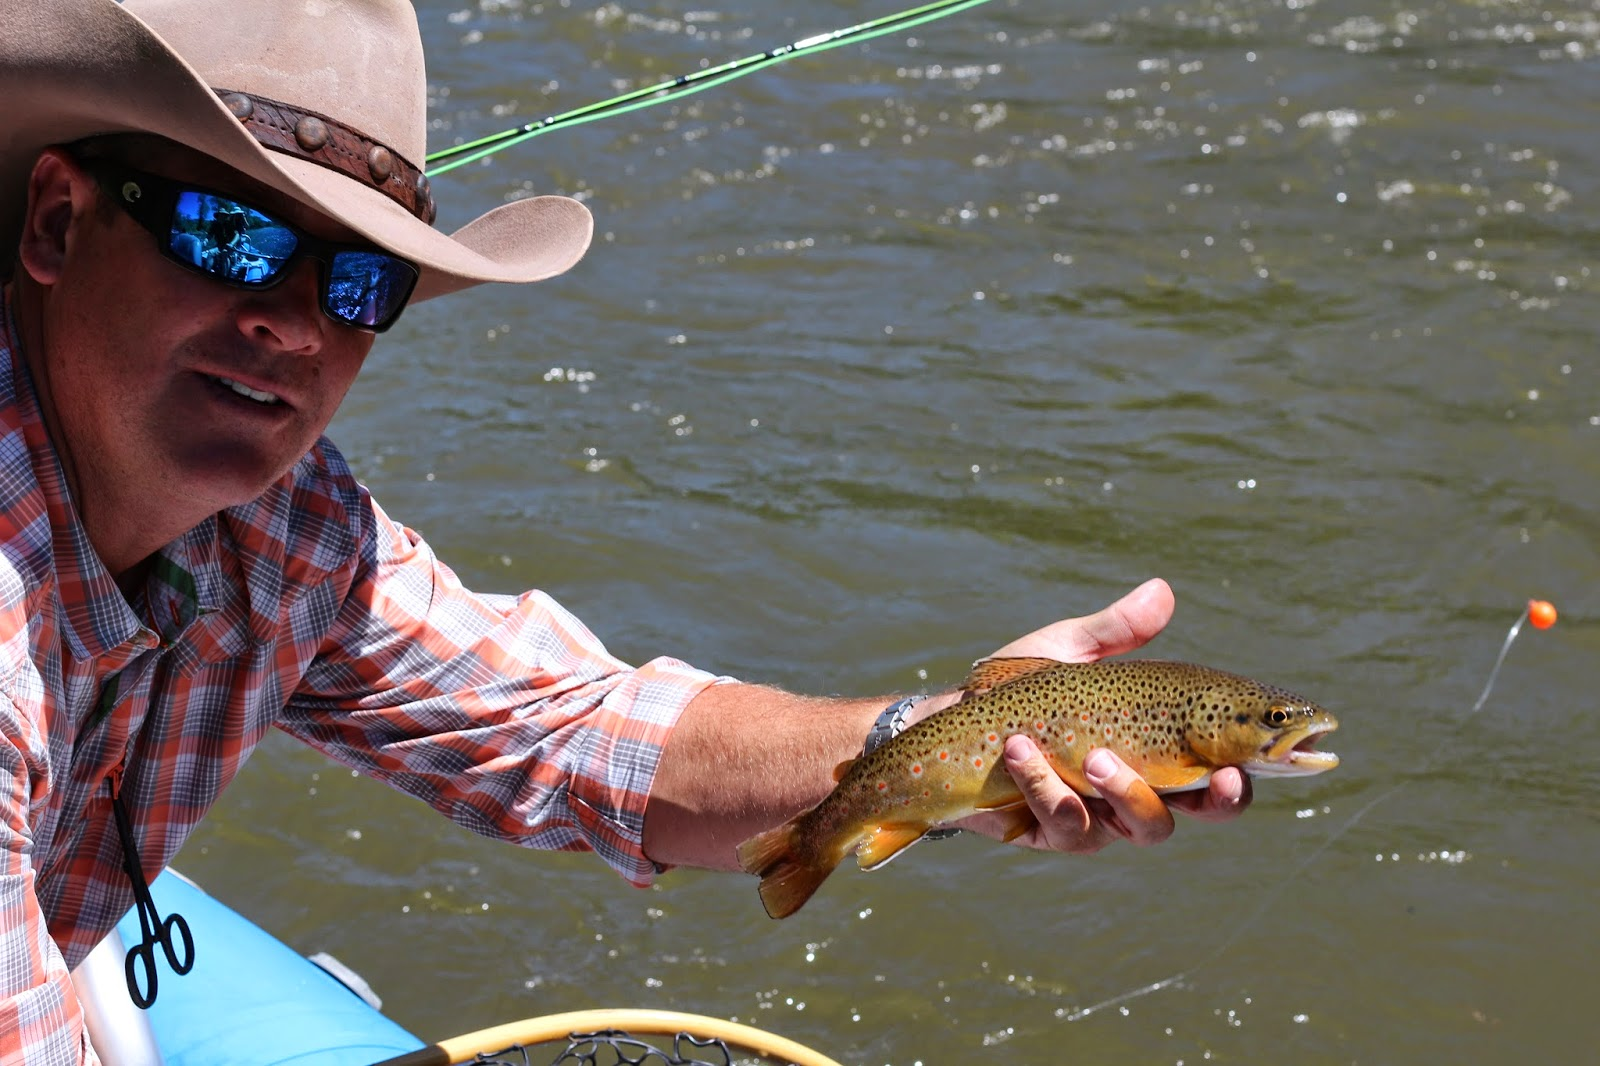 Roaring+fork+river+fly+fishing+with+Jay+Scott+Outdoors+7.JPG